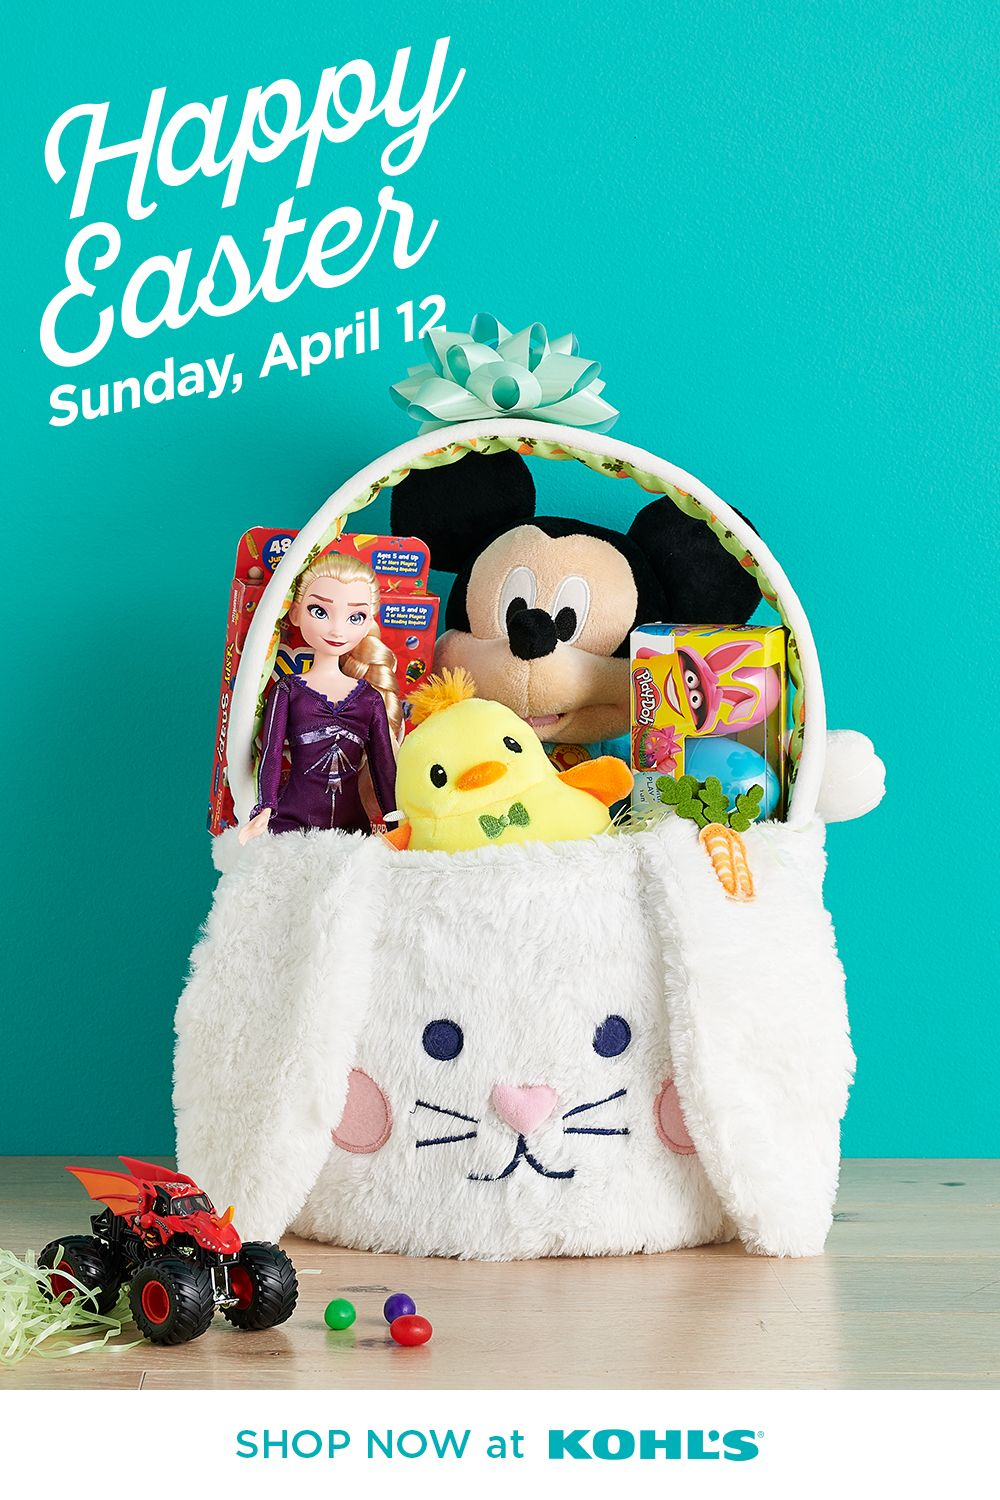 Get a jump start on creating the ultimate Easter basket. Begin with the cutest bunny basket and some sweet treats. Finish it off with top toys that are sure to be their new favorites! Shop Disney and more at Kohl's and Kohls.com. #easter #easterbasket